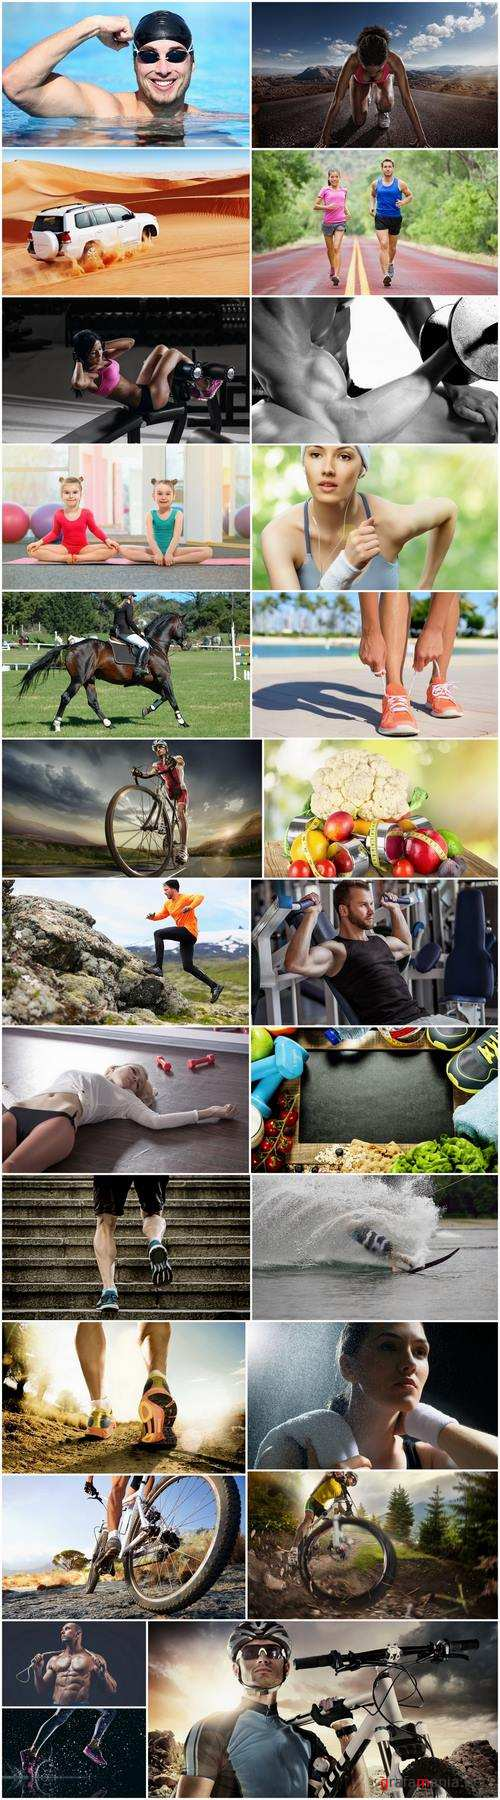 Sports different kinds of fitness leisure useful life training gym hall street 25 HQ Jpeg